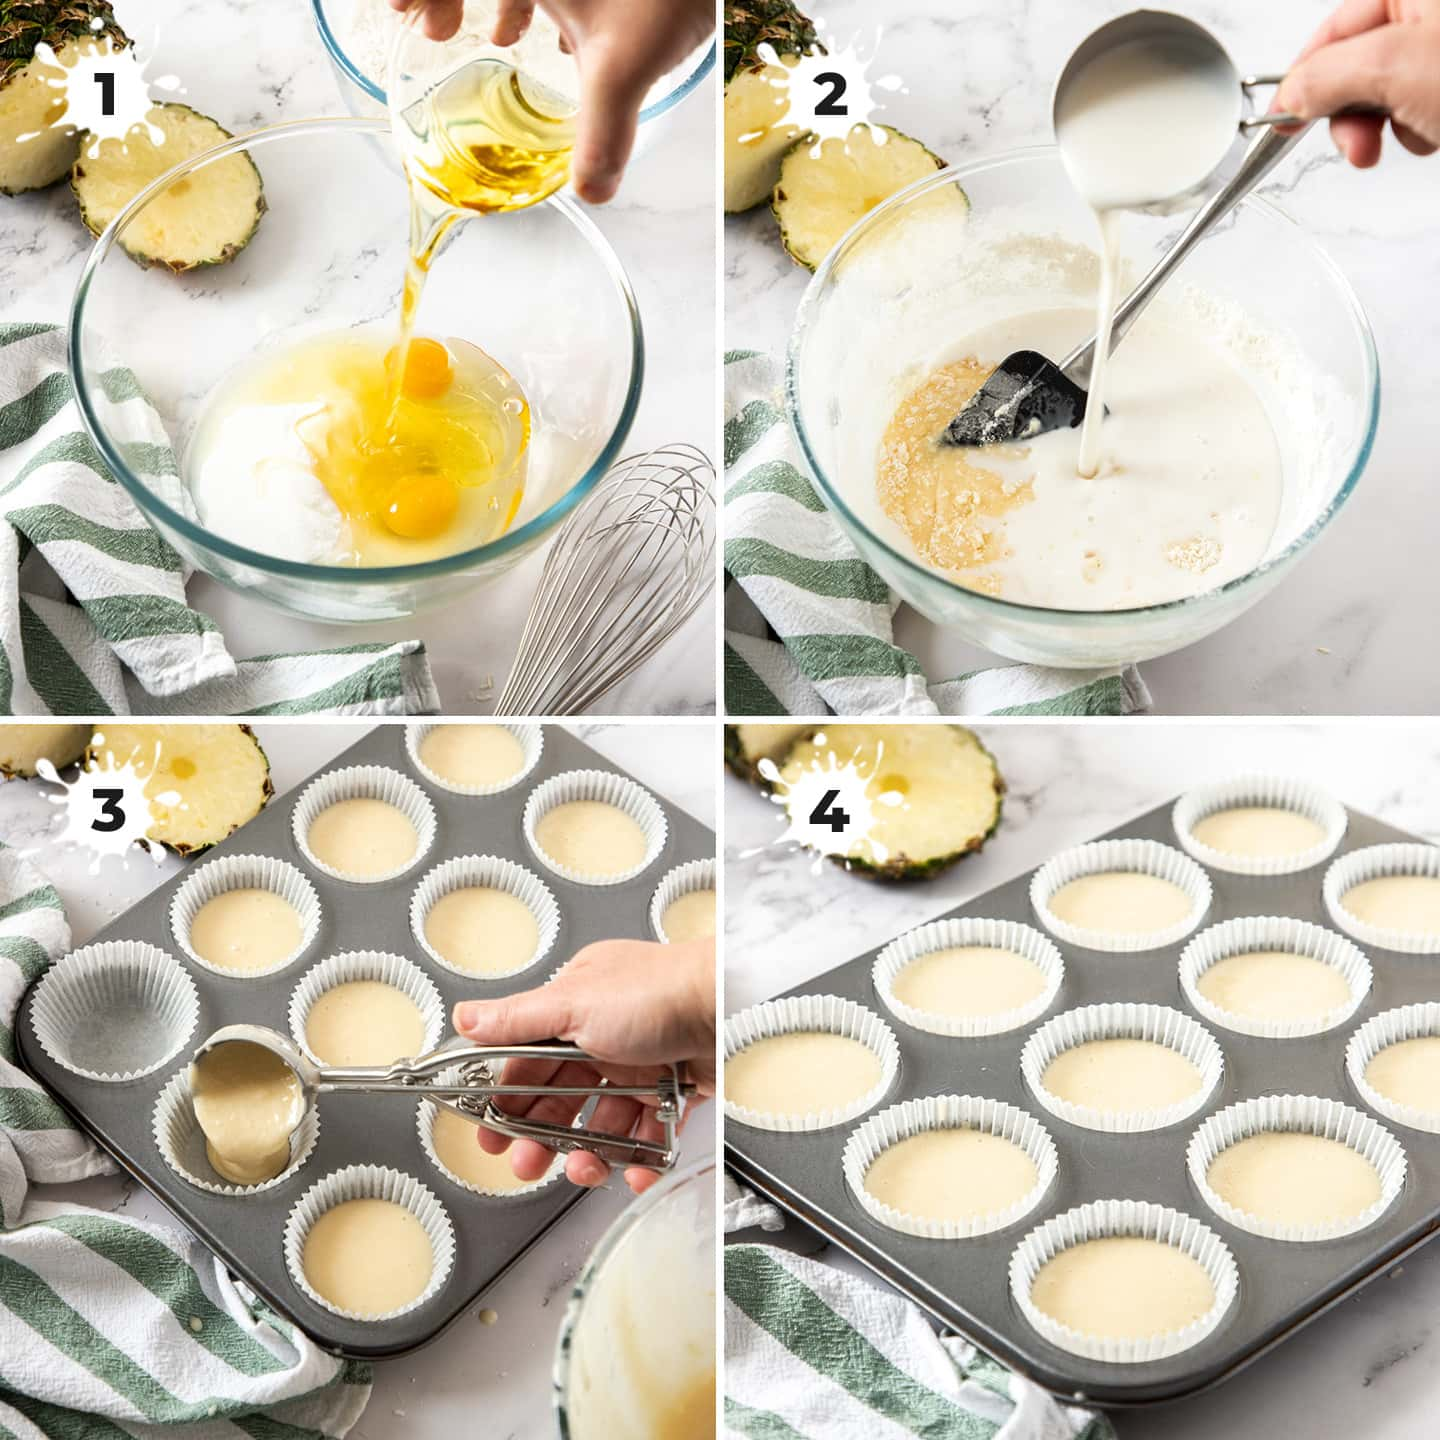 4 images showing the making of cupcake batter